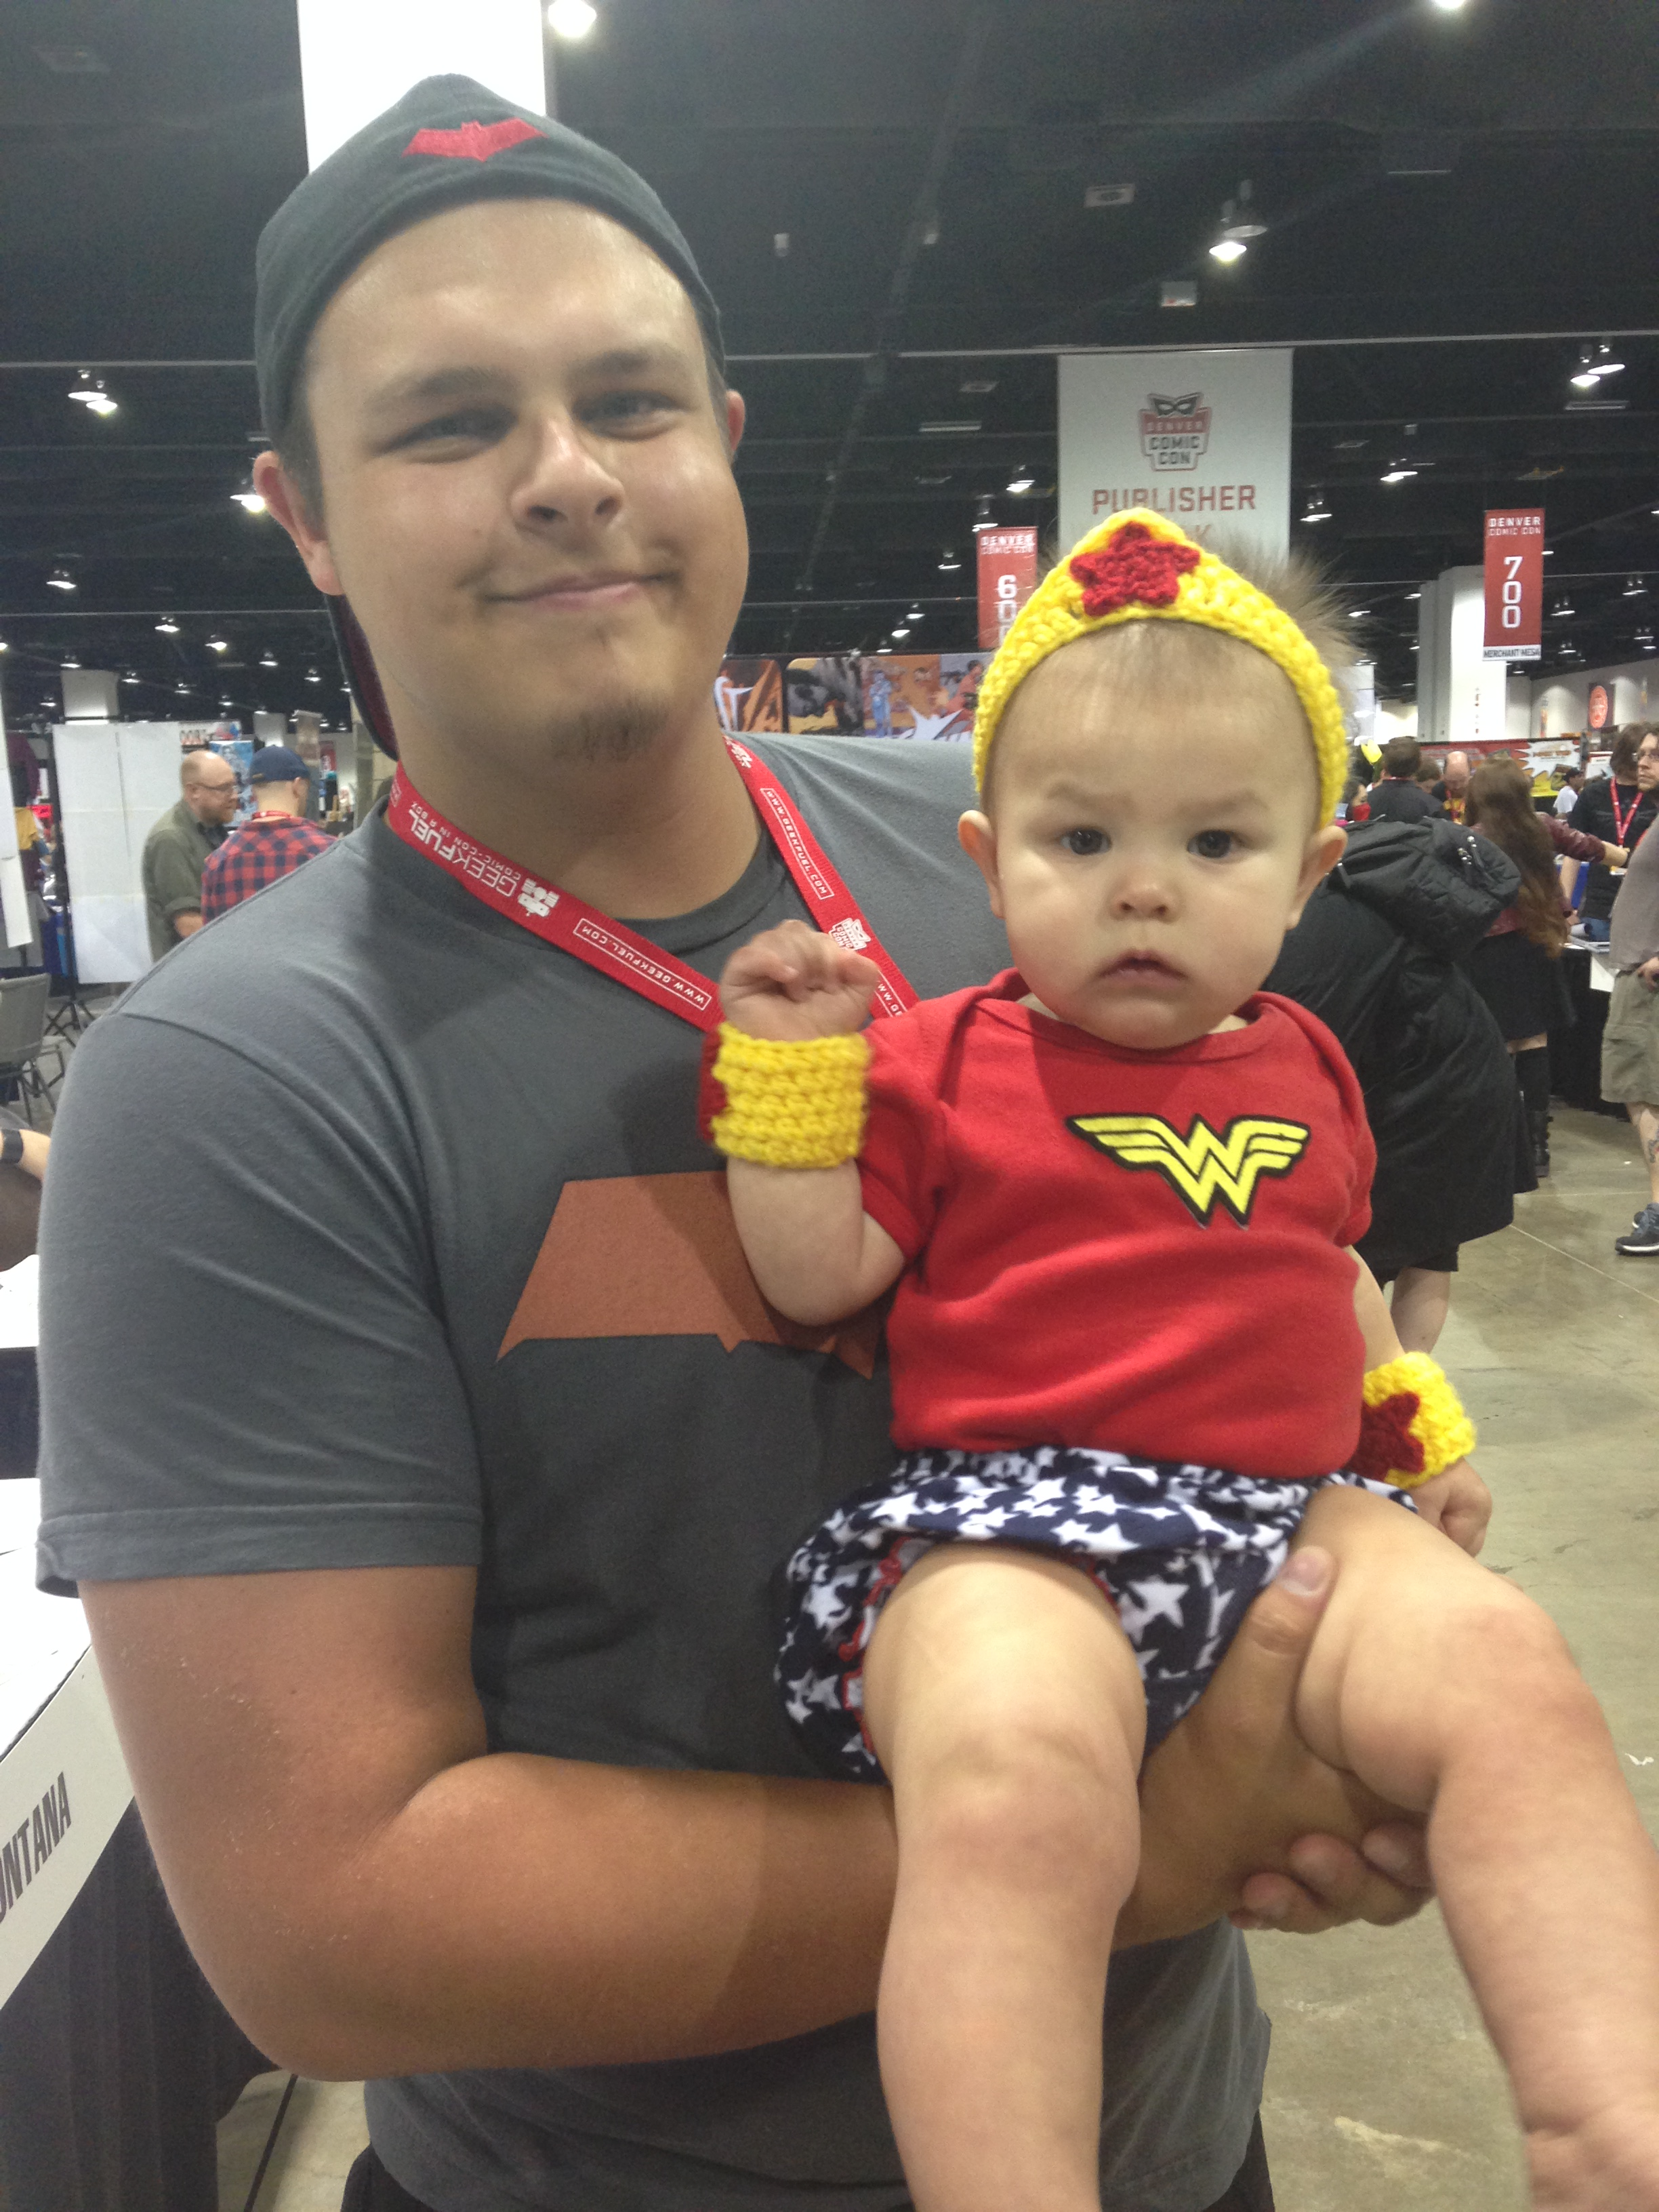 She ruled the con as tiny Wonder Woman! Here is Annabella with her daddy.